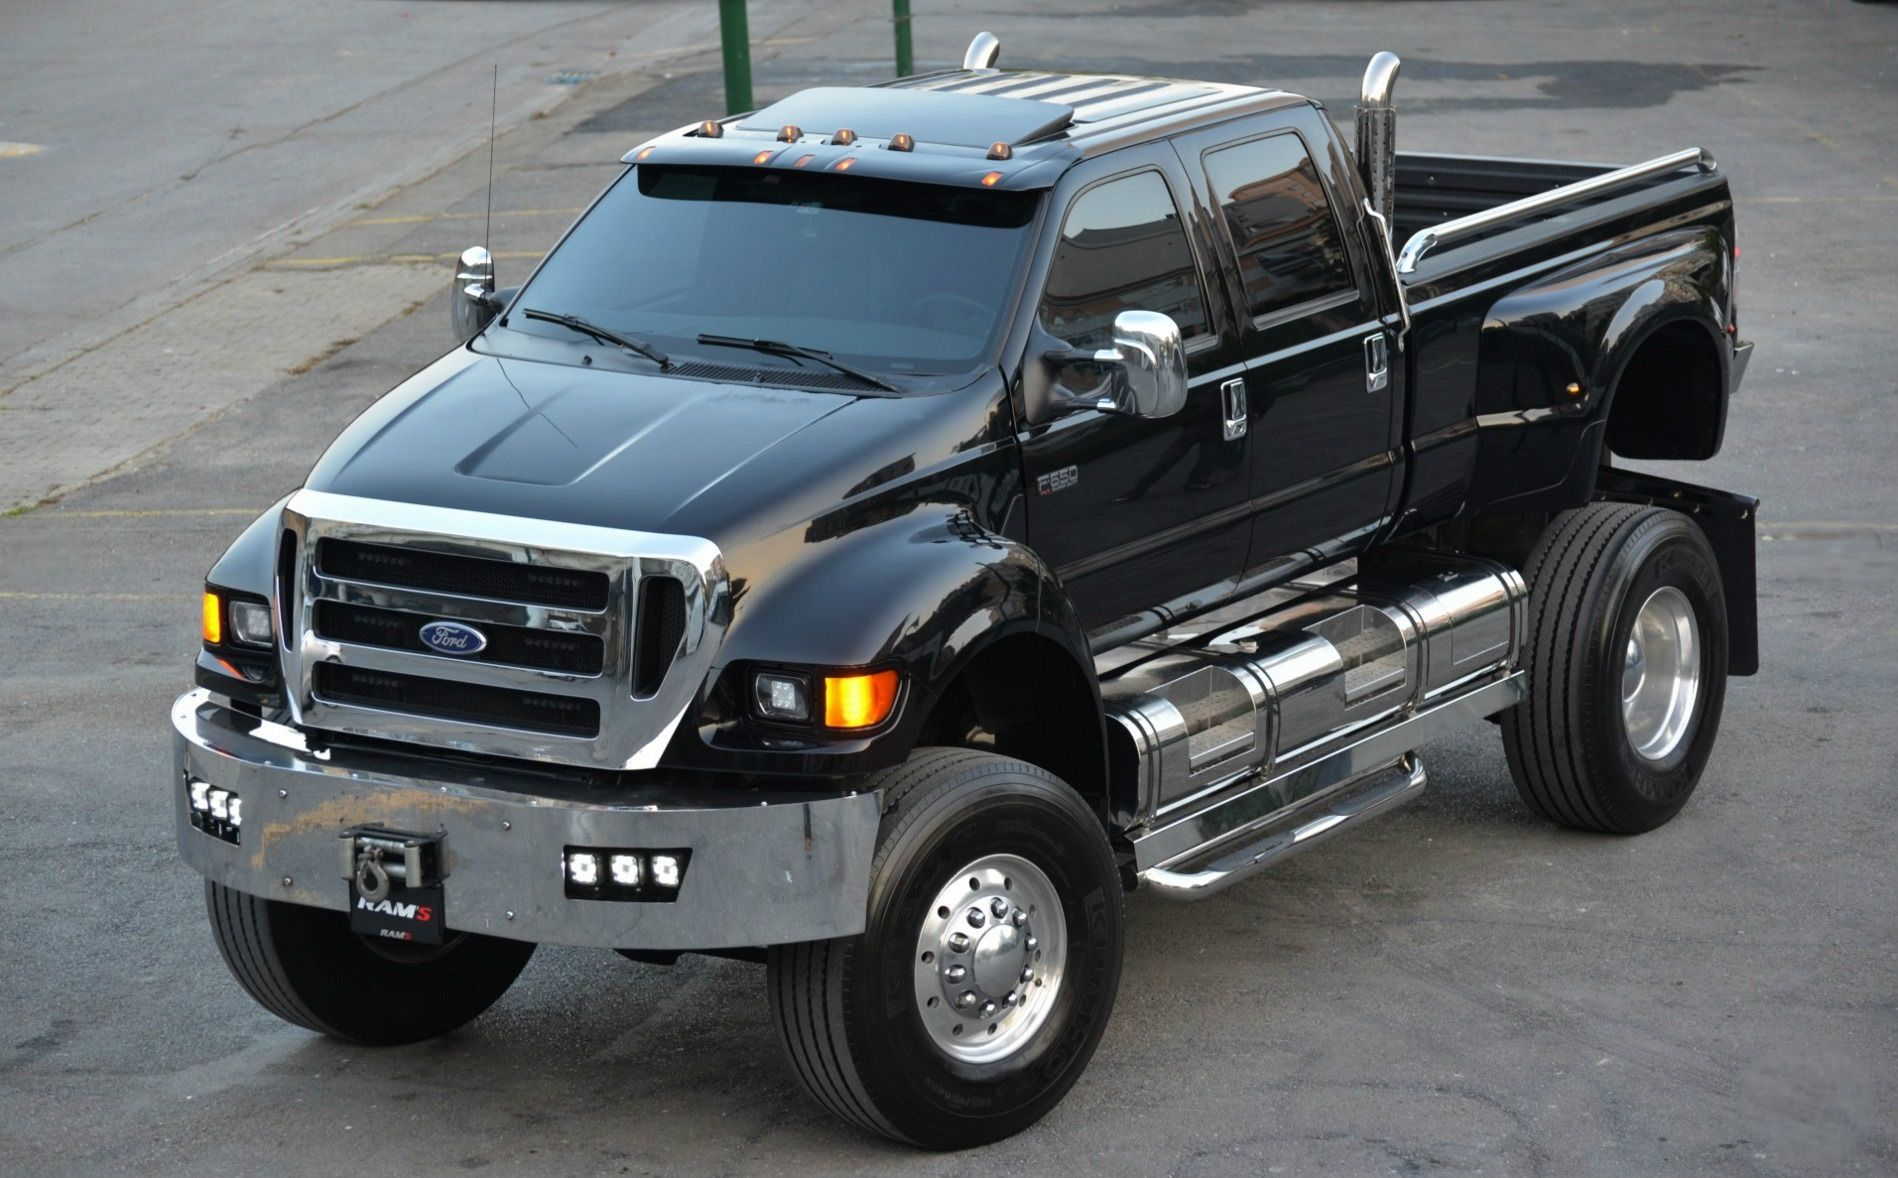 Ford F750 Super Duty >> Pin by Jessica Warren on Ford Trucks | Pinterest | Ford trucks, Ford and Trucks